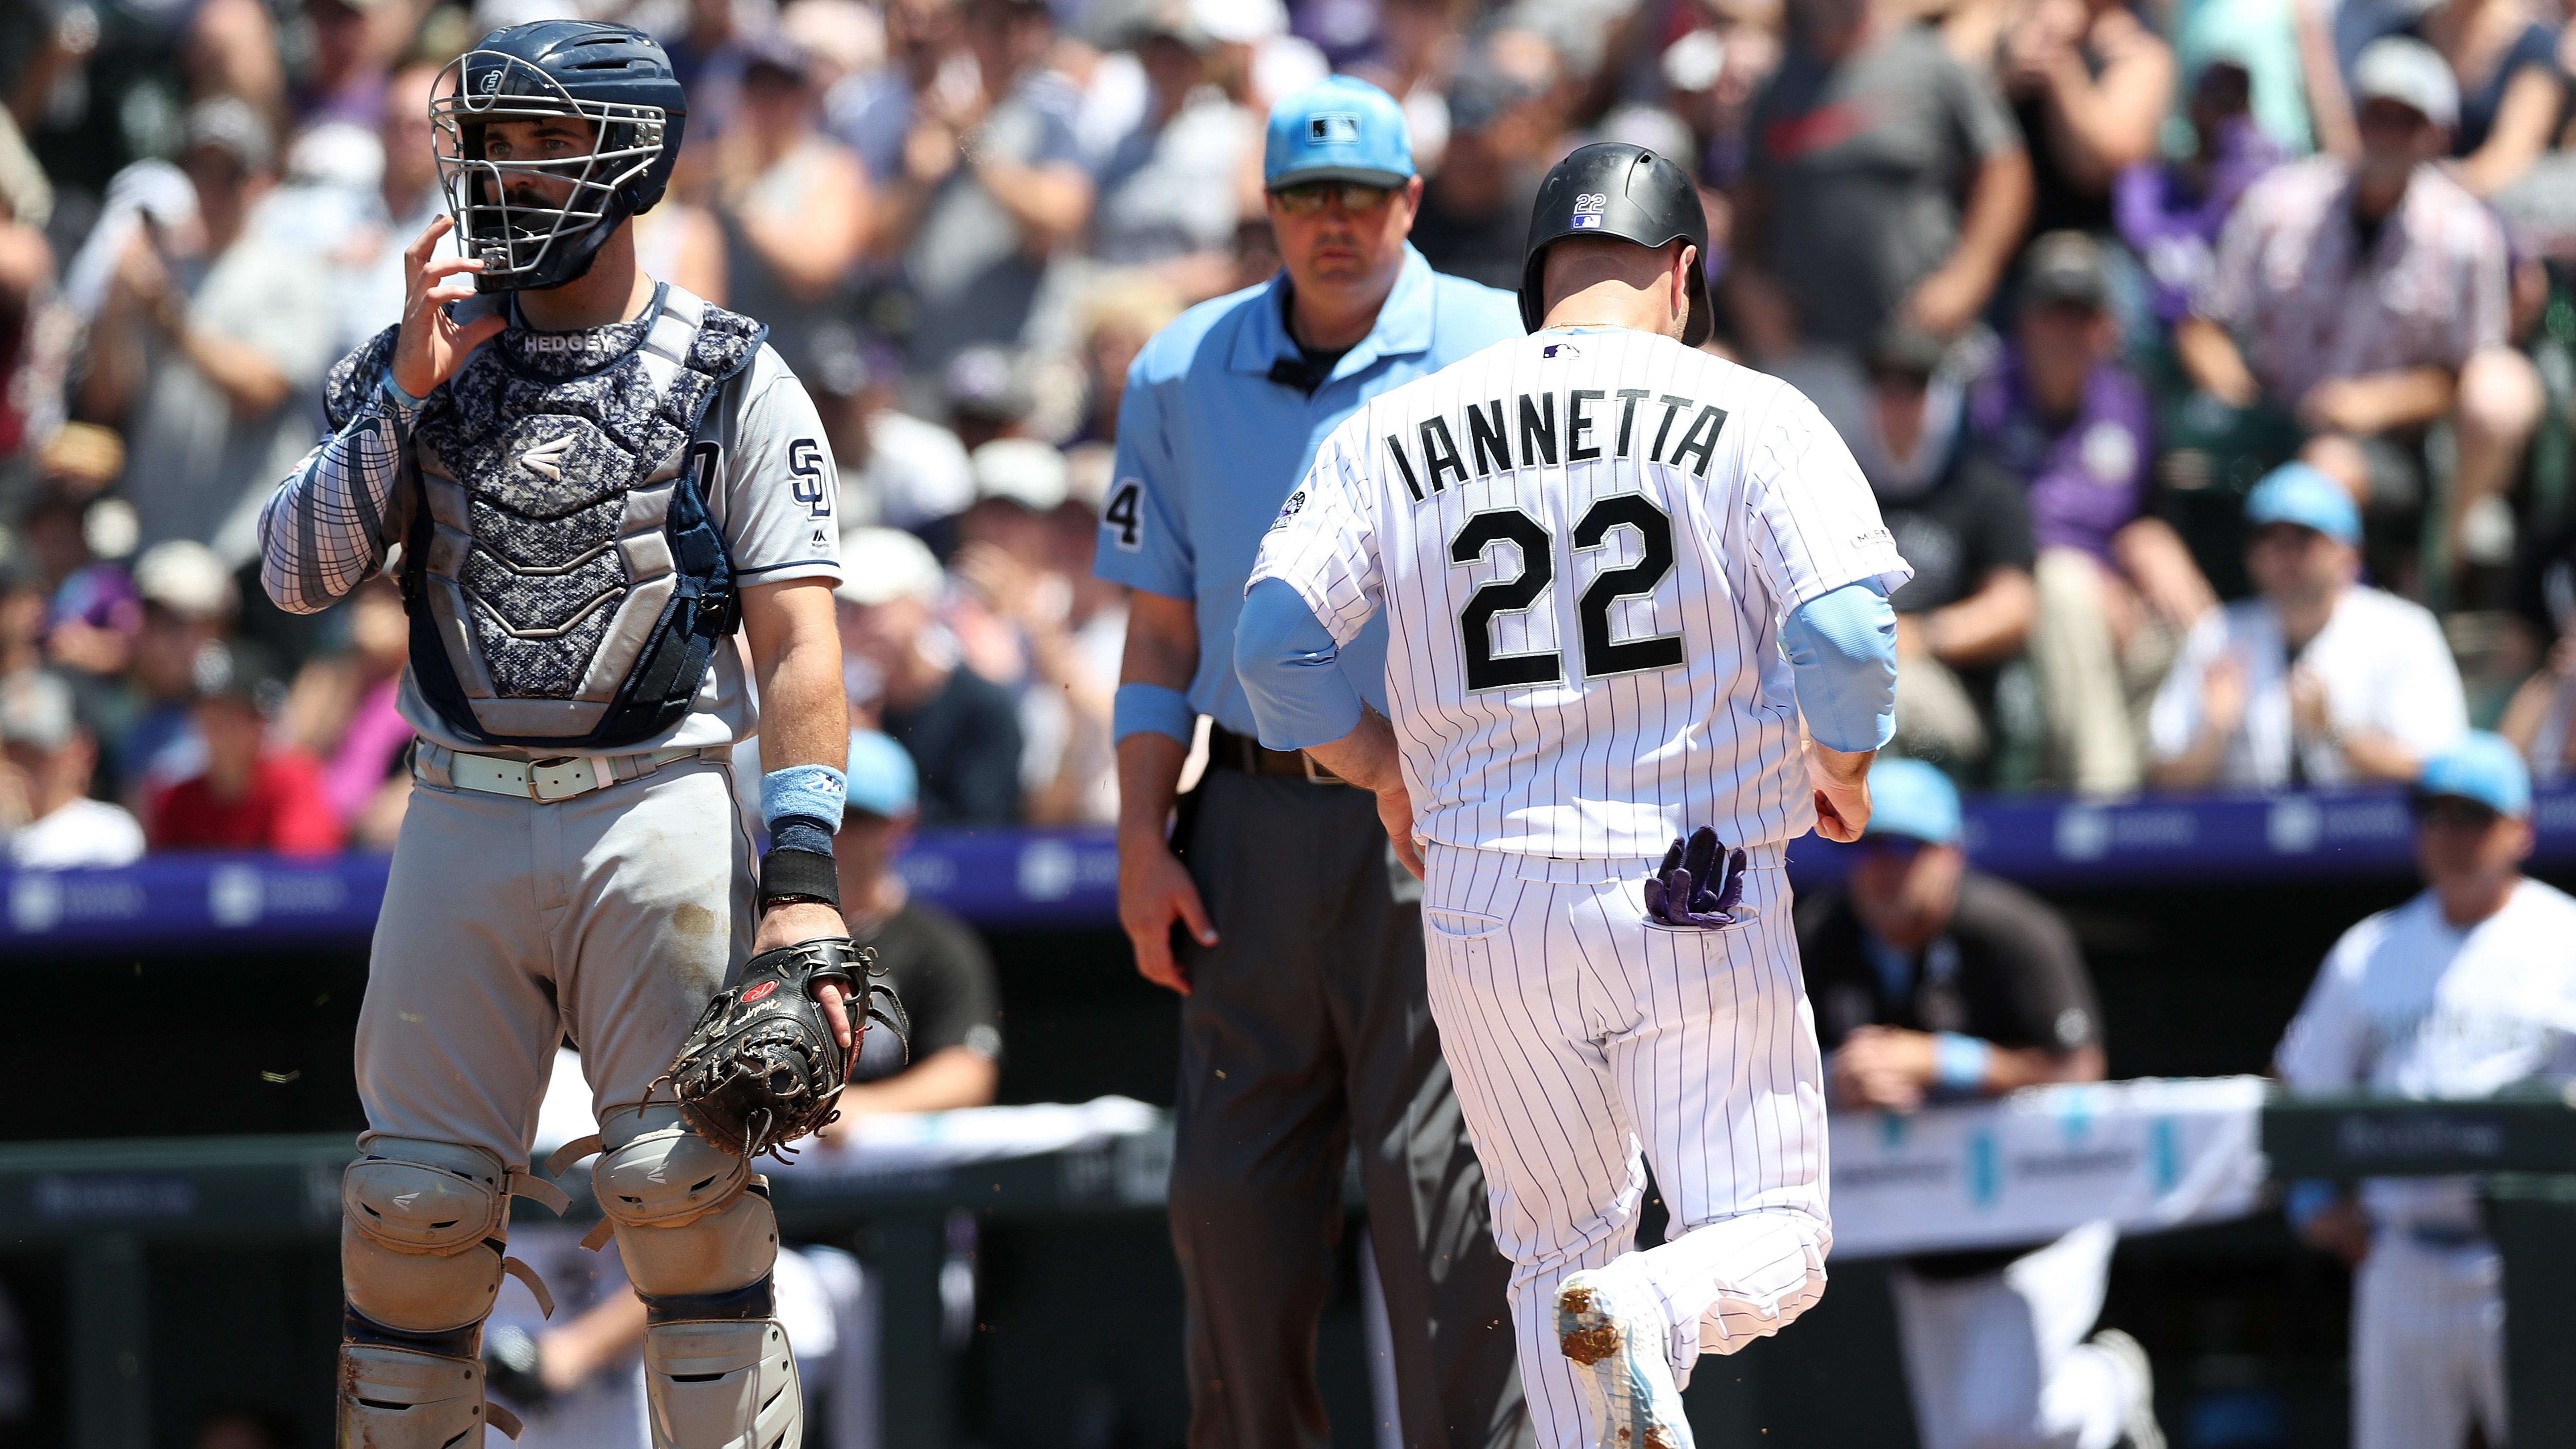 DENVER, COLORADO - JUNE 16:  Chris Iannetta #22 of the Colorado Rockies scores on a fielding error on a hit by Charlie Blackmon in the first inning against the San Diego Padres at Coors Field on June 16, 2019 in Denver, Colorado. (Photo by Matthew Stockman/Getty Images)